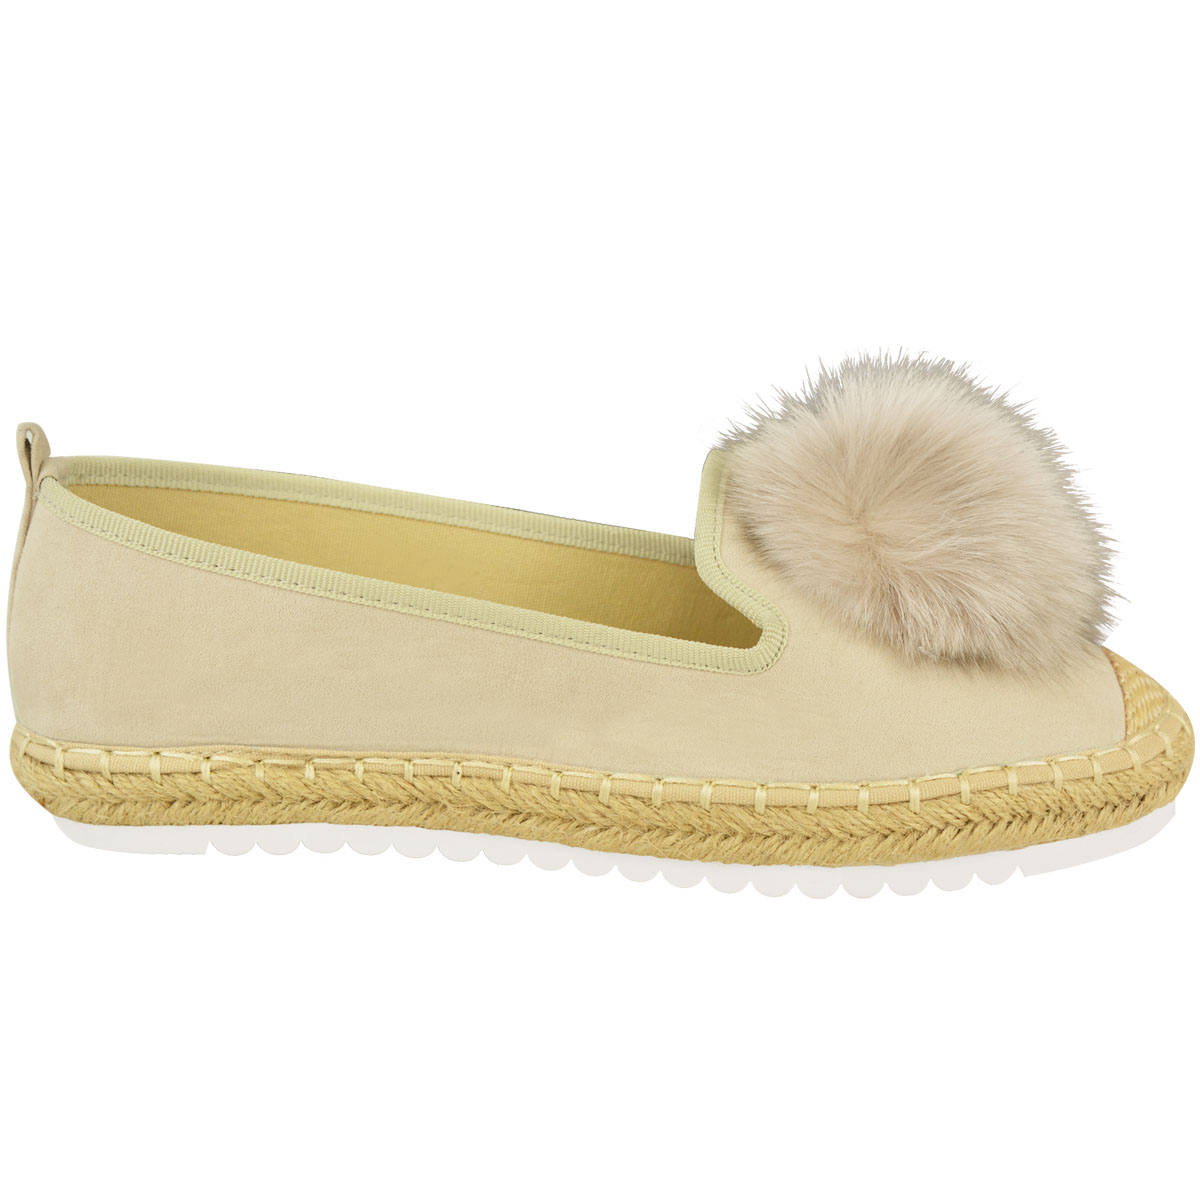 Womens-Ladies-Espadrilles-Flat-Pom-Pom-Sandals-Slip-On-Strappy-Comfy-Size-Shoes thumbnail 31